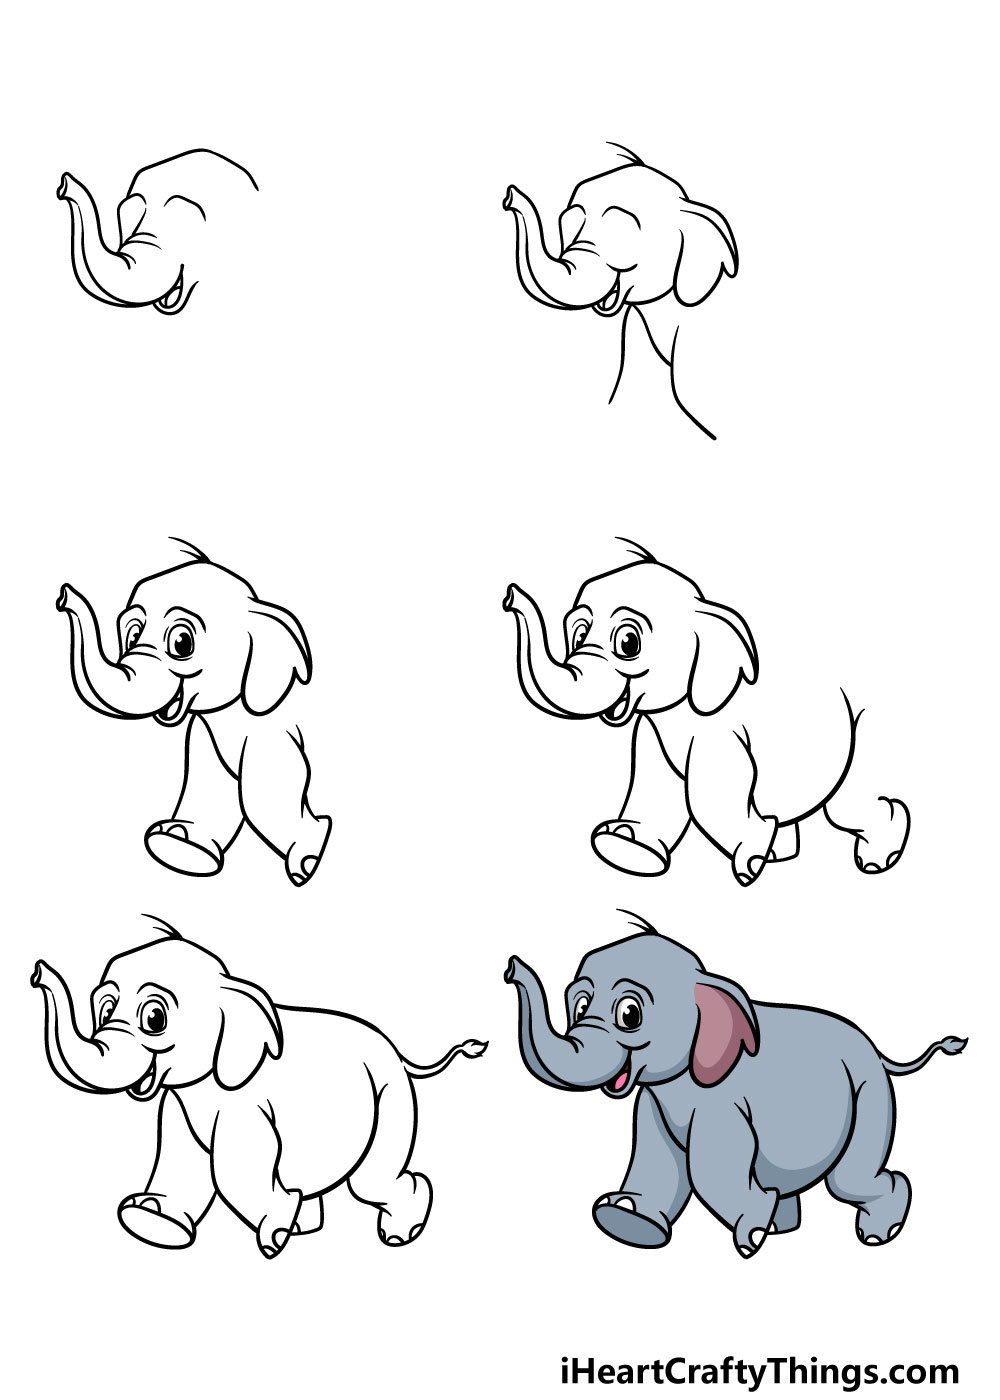 how to draw a baby elephant in 6 steps